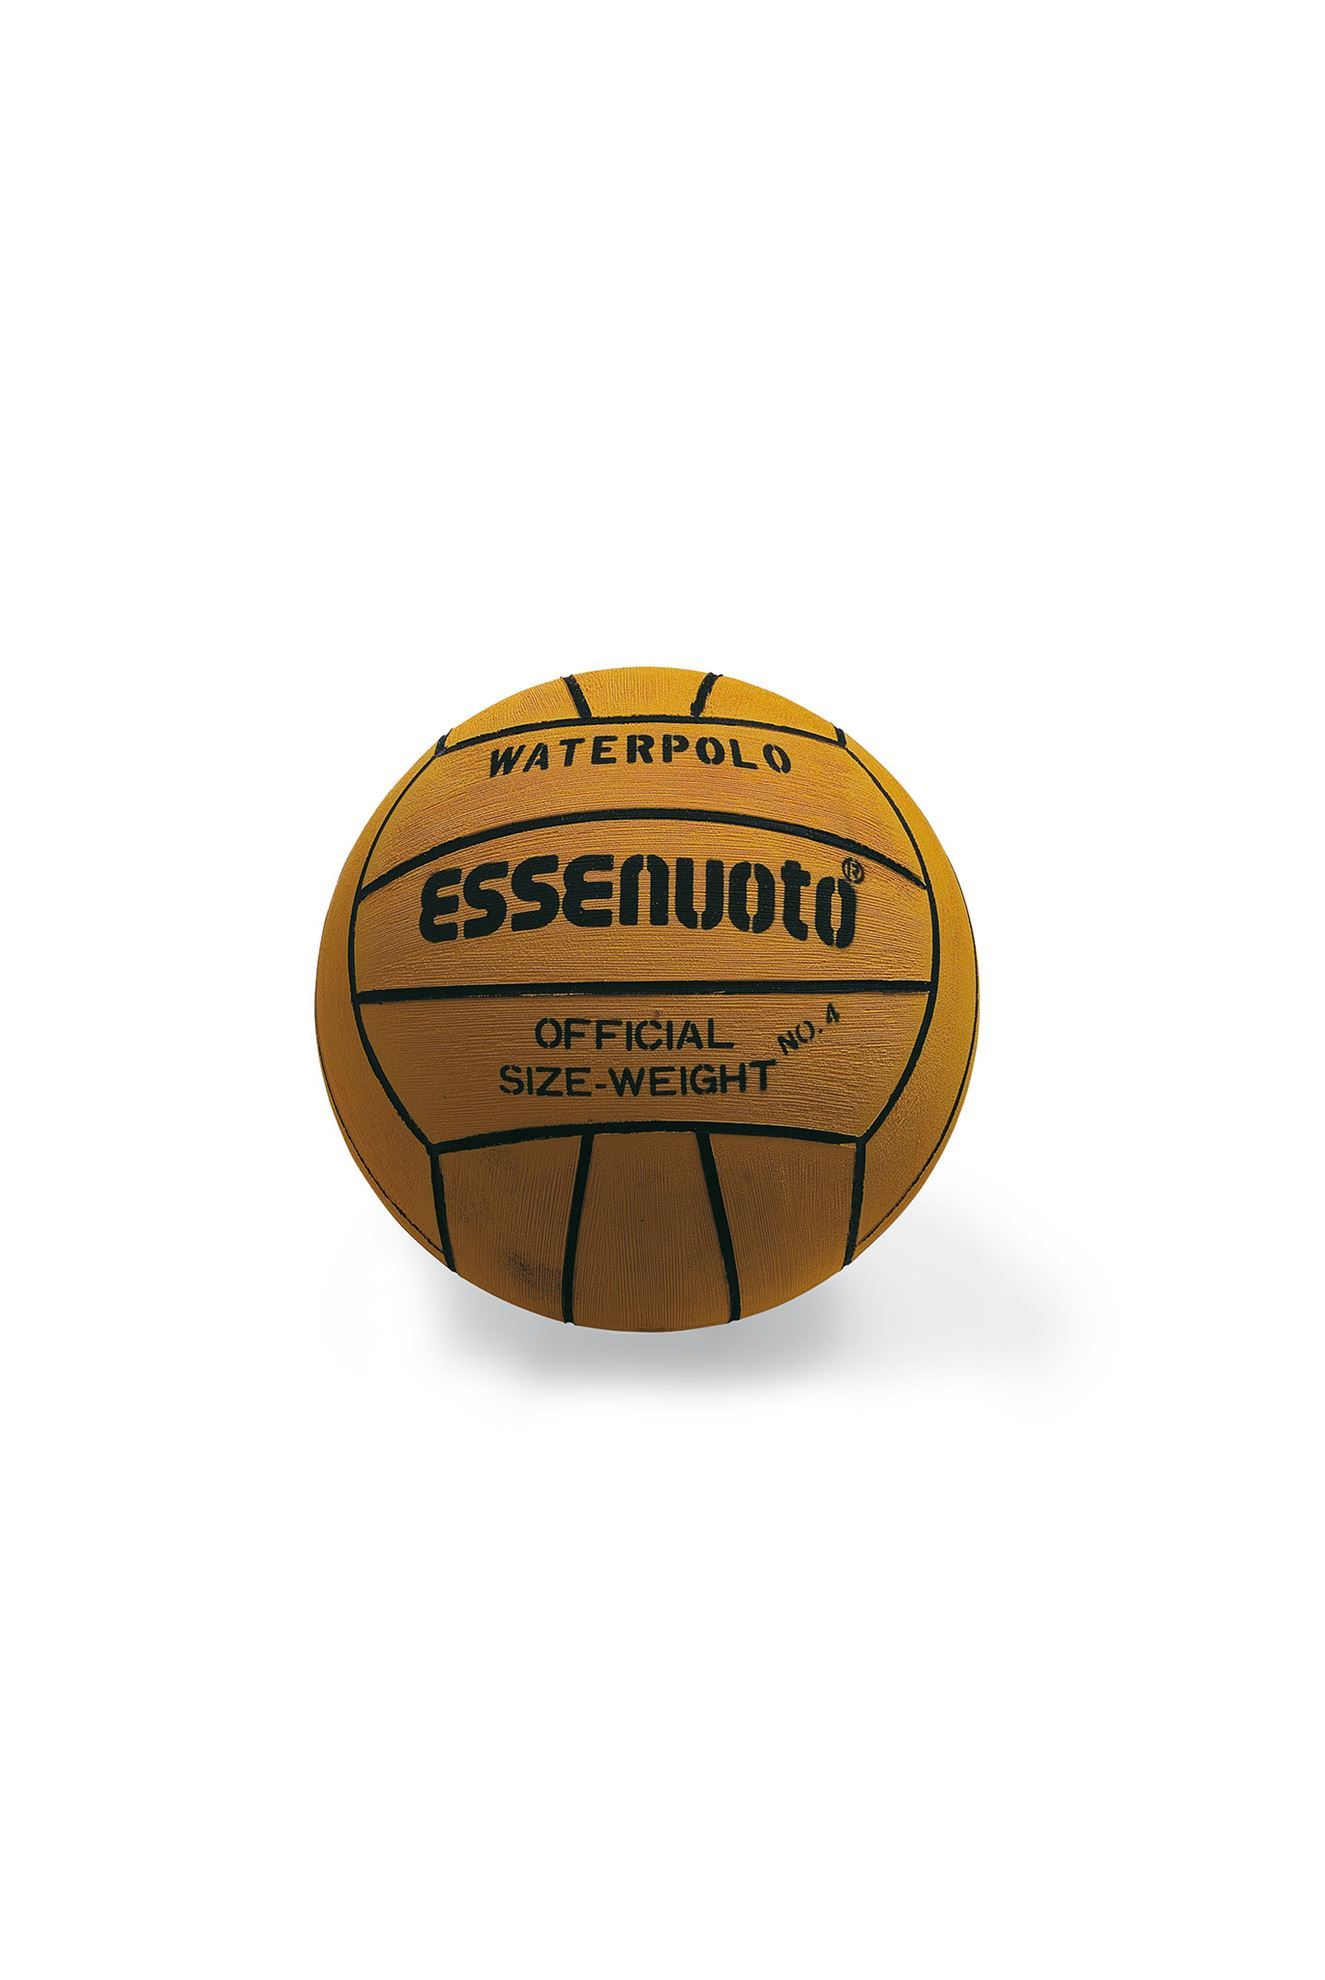 204006 - WATERPOLO BALL FOR WOMEN